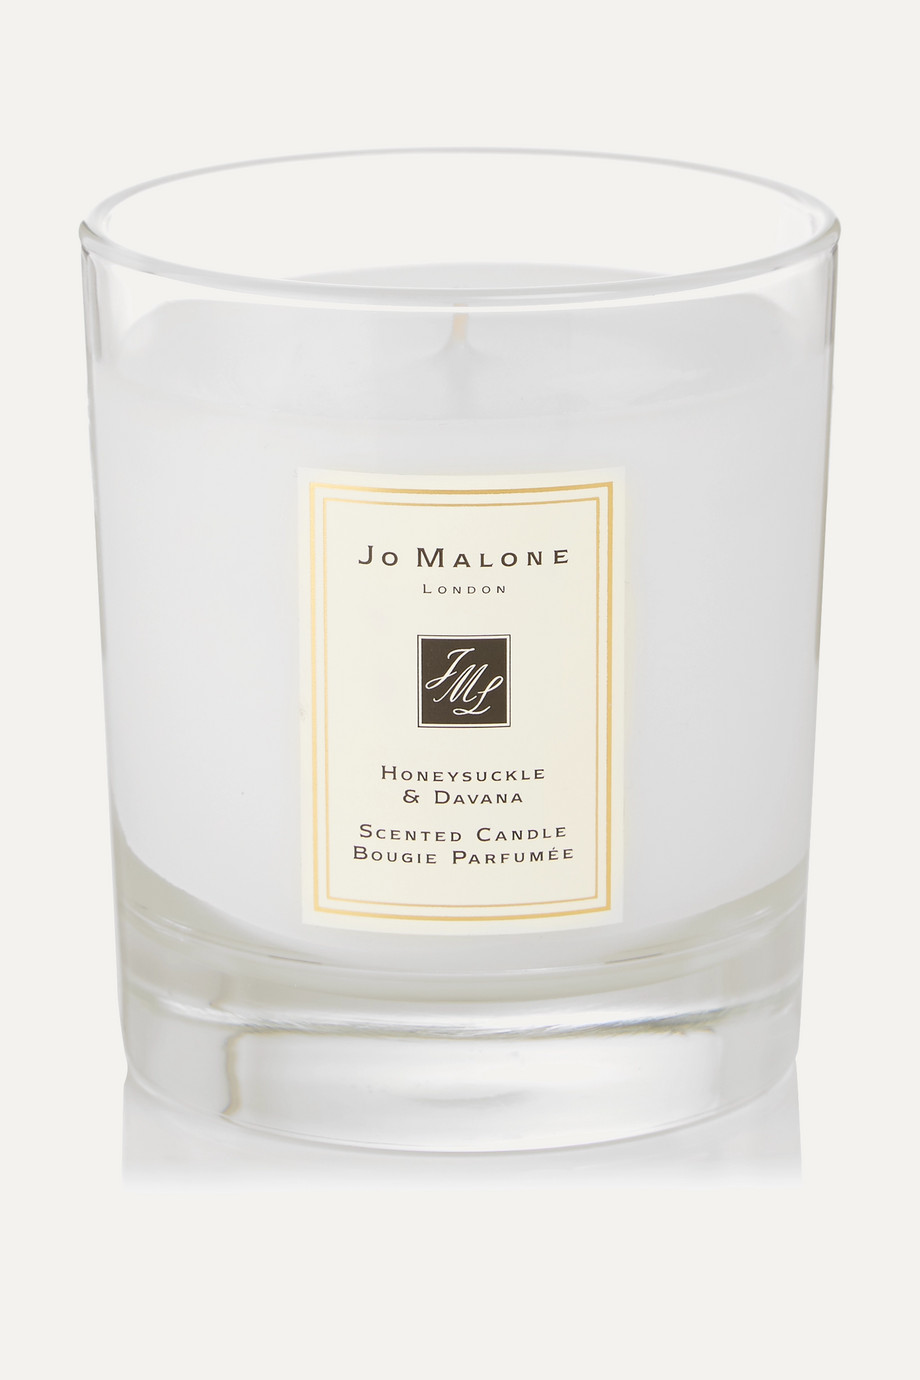 JO MALONE LONDON Honeysuckle & Davana Scented Home Candle, 200g